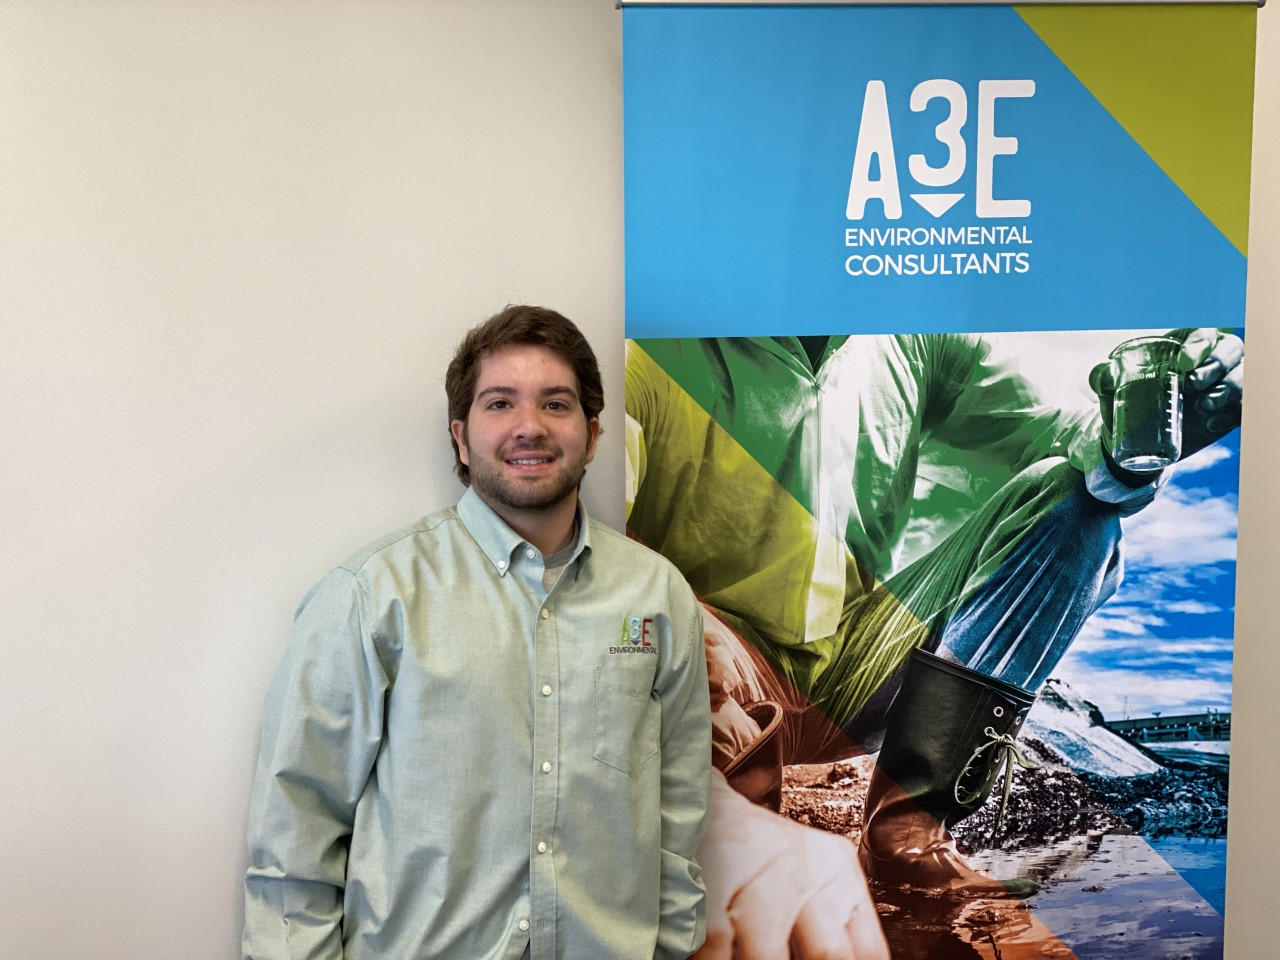 A3 Environmental Consultants is pleased to introduce our summer intern, Andreas Kougias.